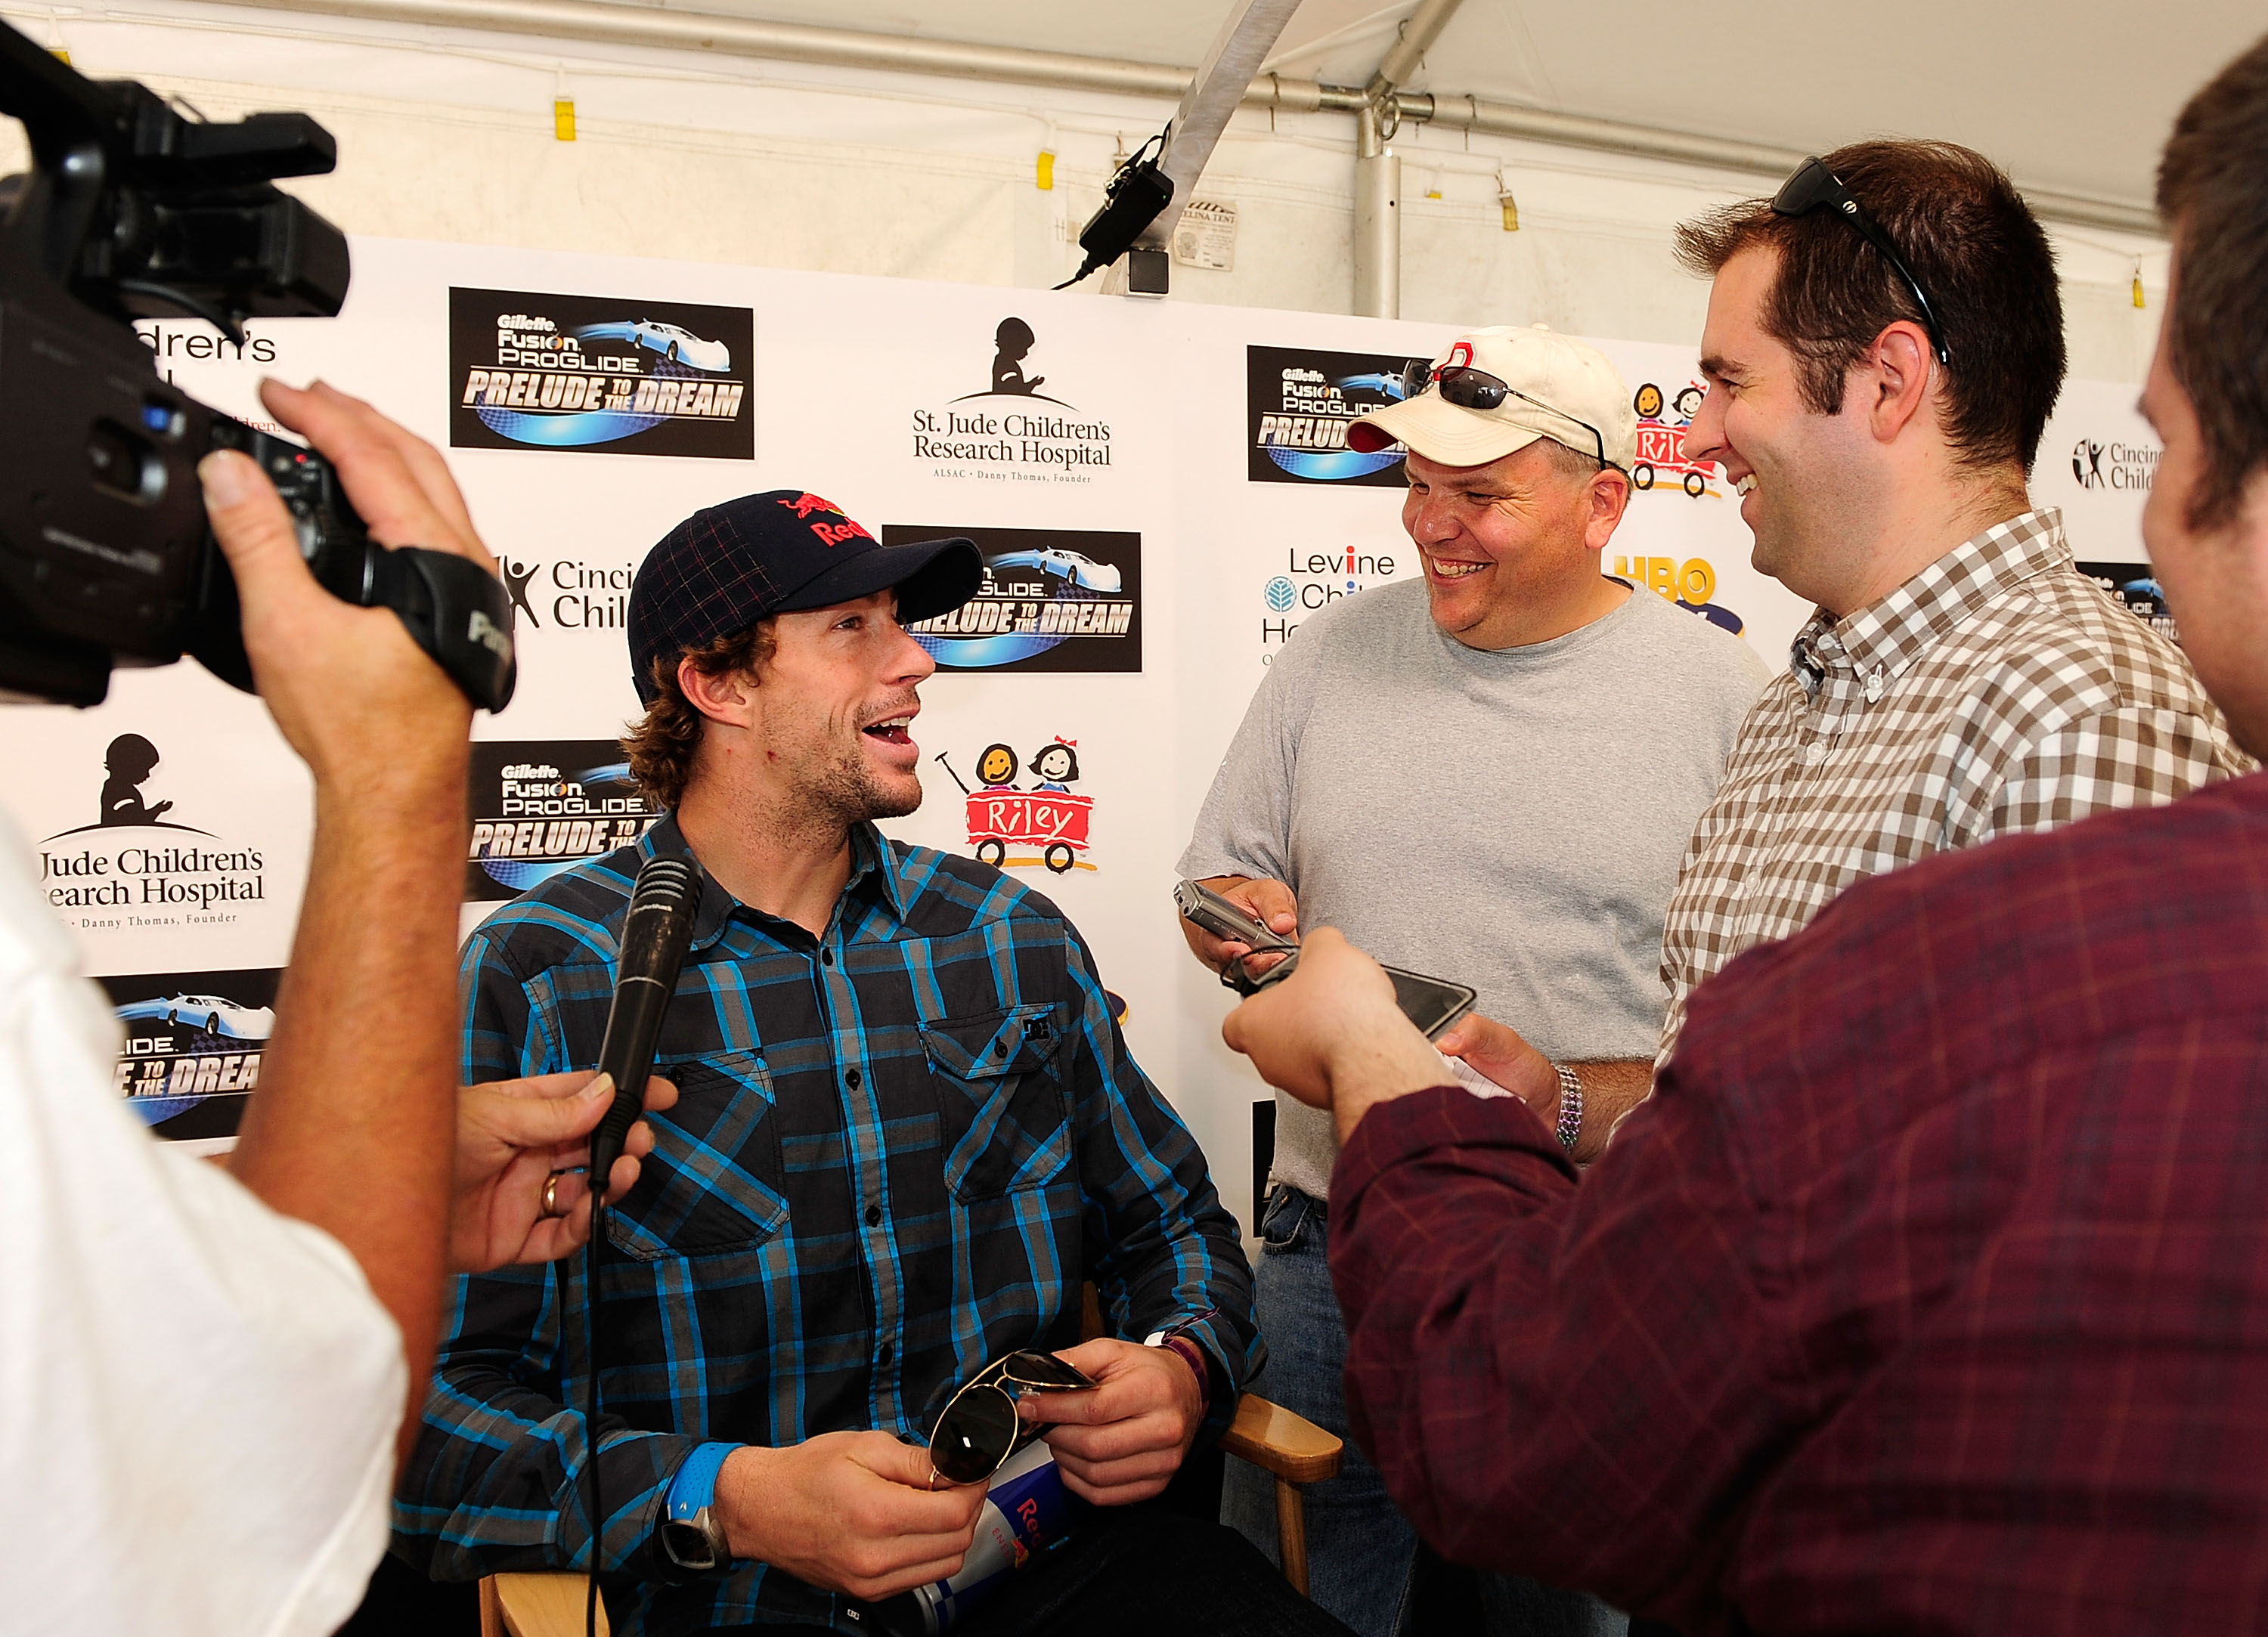 ROSSBURG, OH - JUNE 09:  Travis Pastrana, driver of the #199 Red Bull late model Toyota, speaks with the media prior to the Gillette Fusion ProGlide Prelude to the Dream at Eldora Speedway on June 9, 2010 in Rossburg, Ohio.  (Photo by Rusty Jarrett/Getty